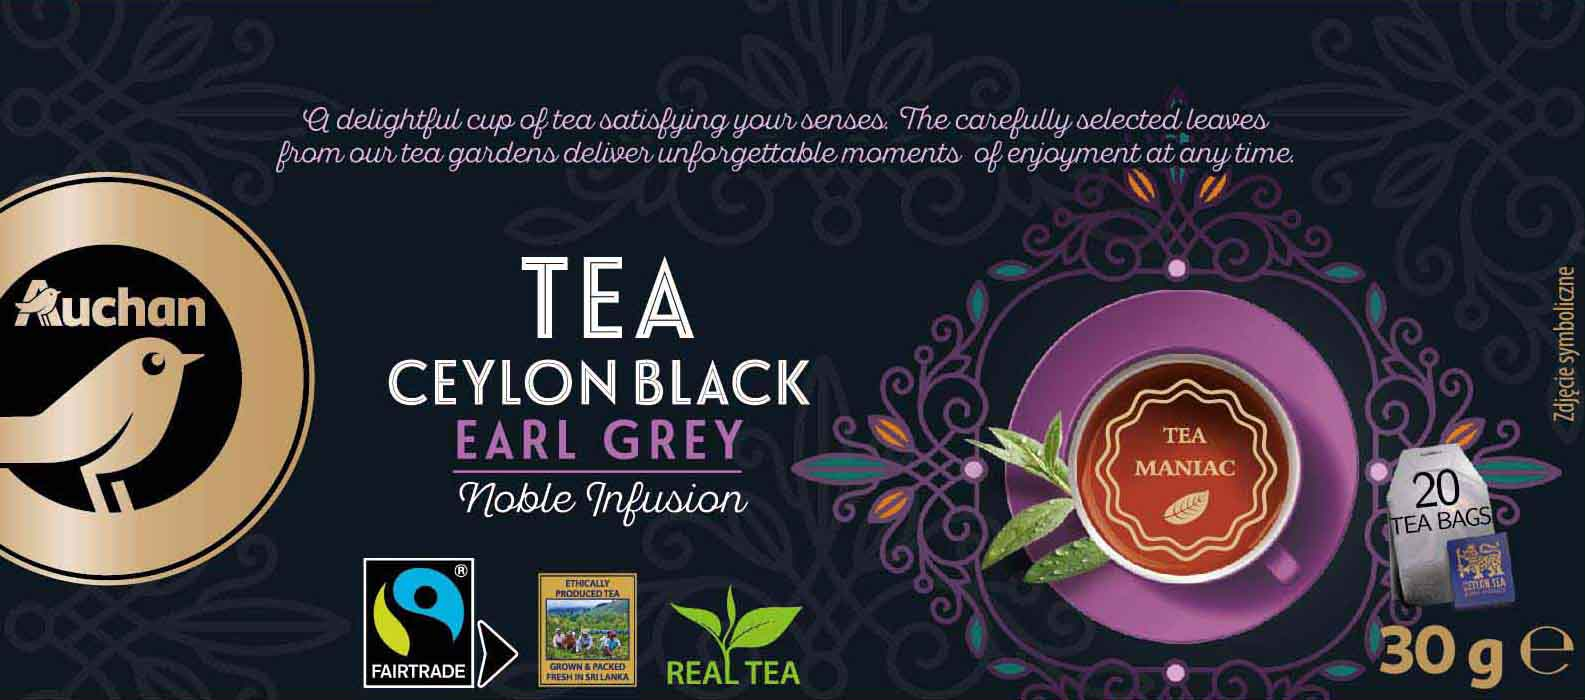 Tea Ceylon Black Earl Grey